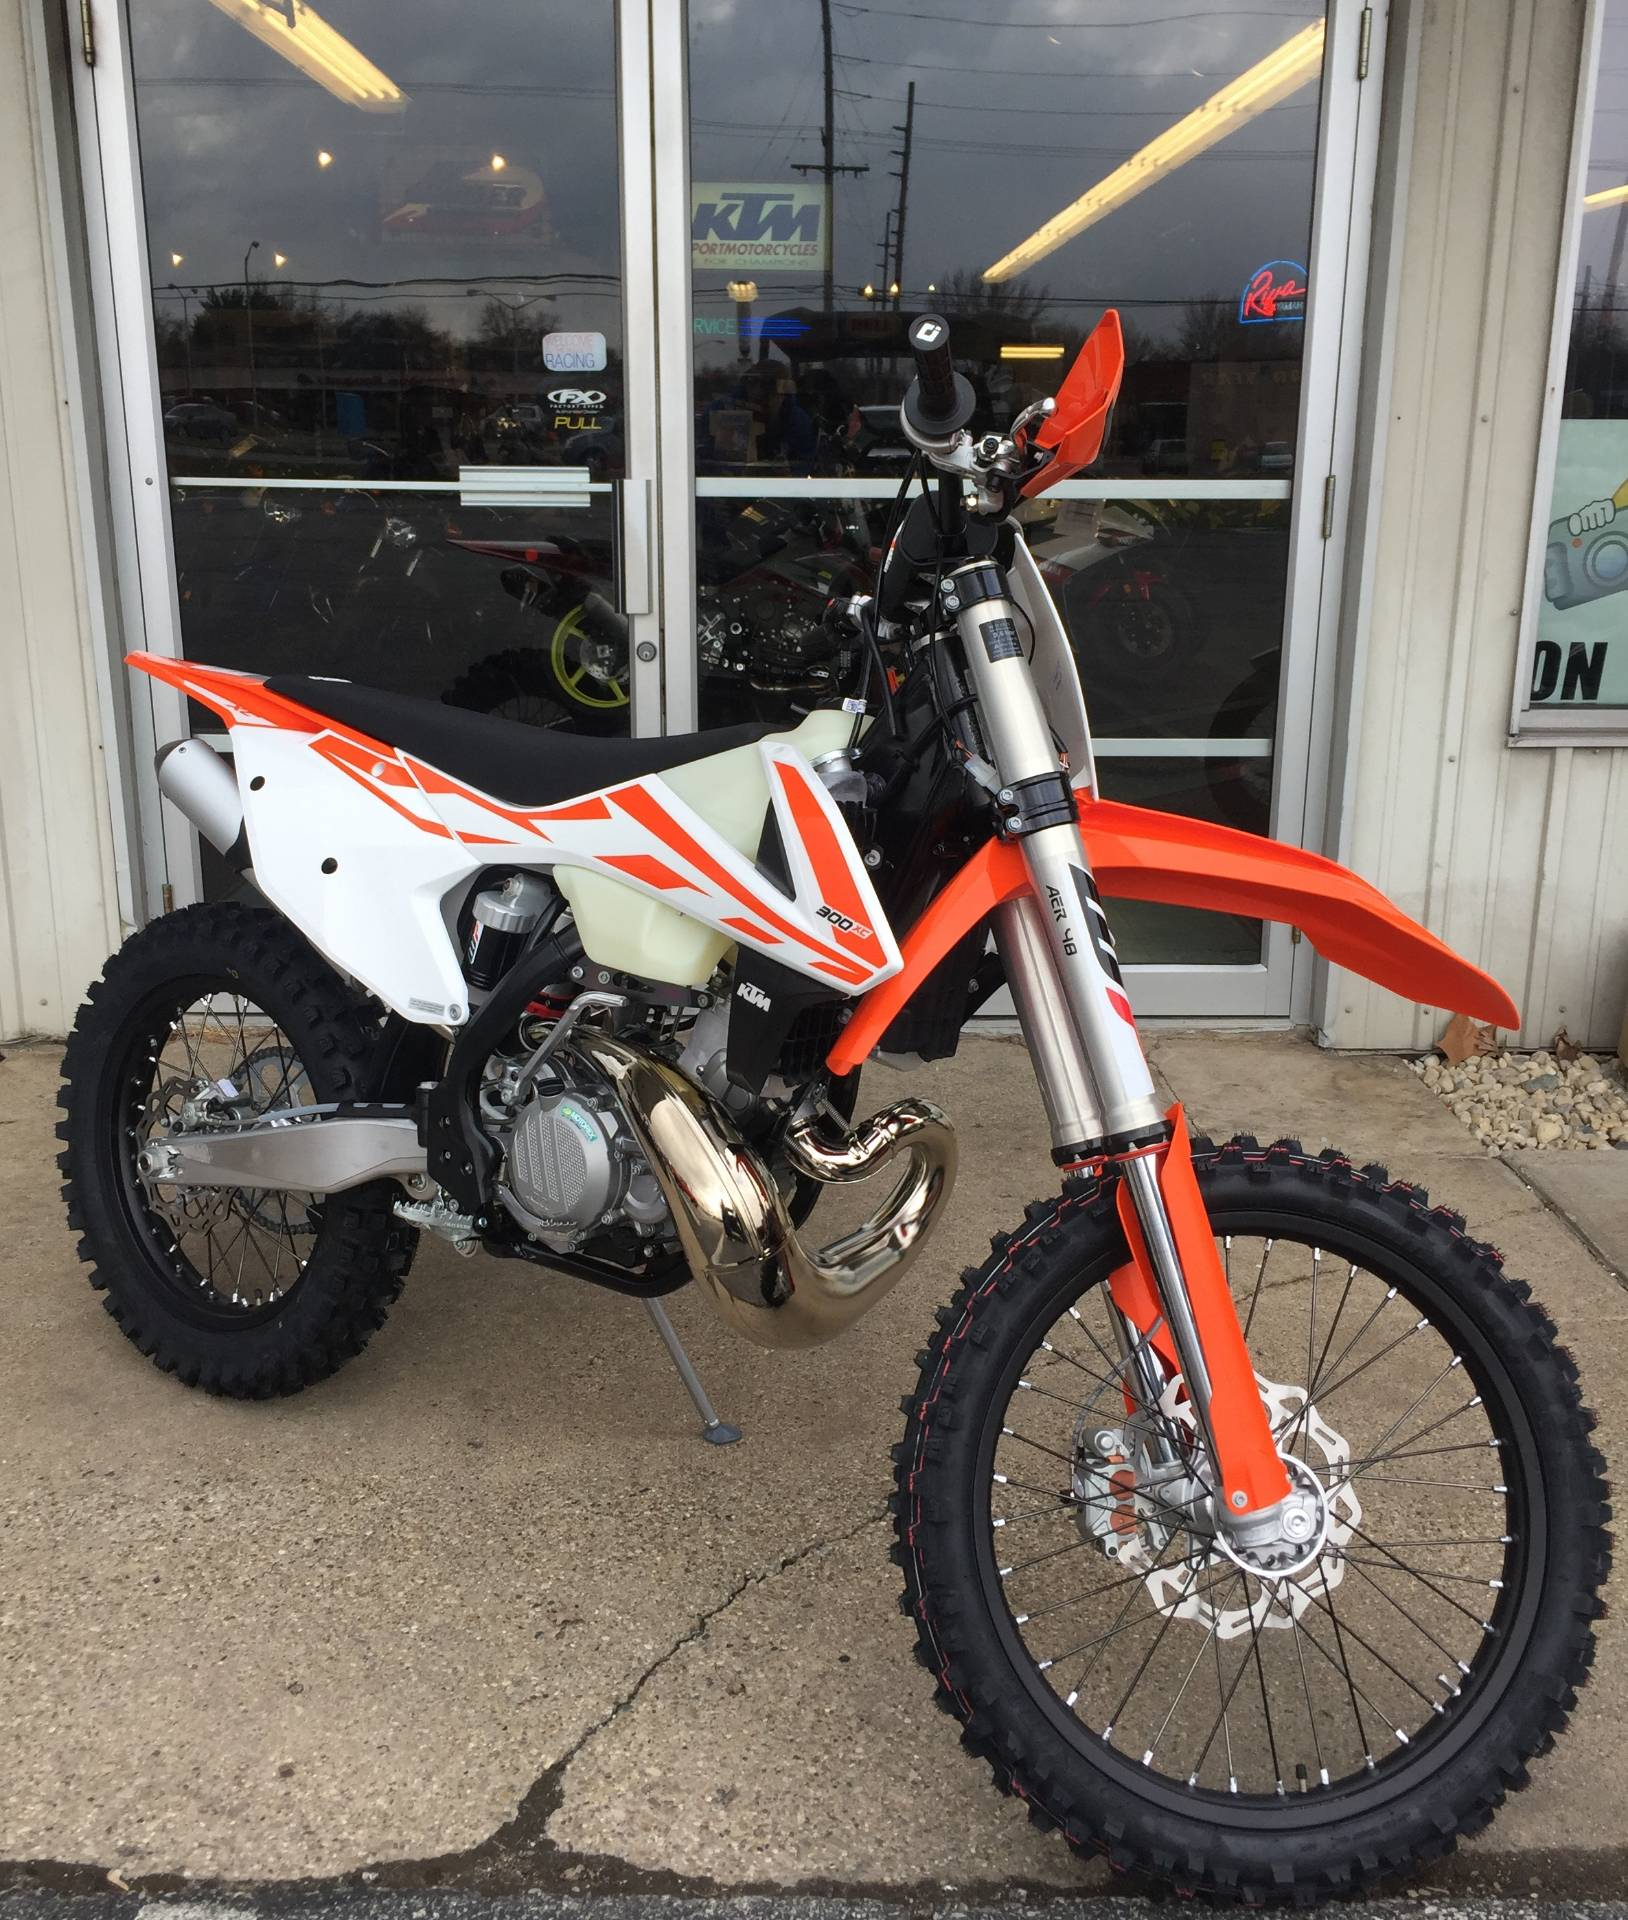 new 2017 ktm 300 xc motorcycles in hobart, in | stock number: n/a